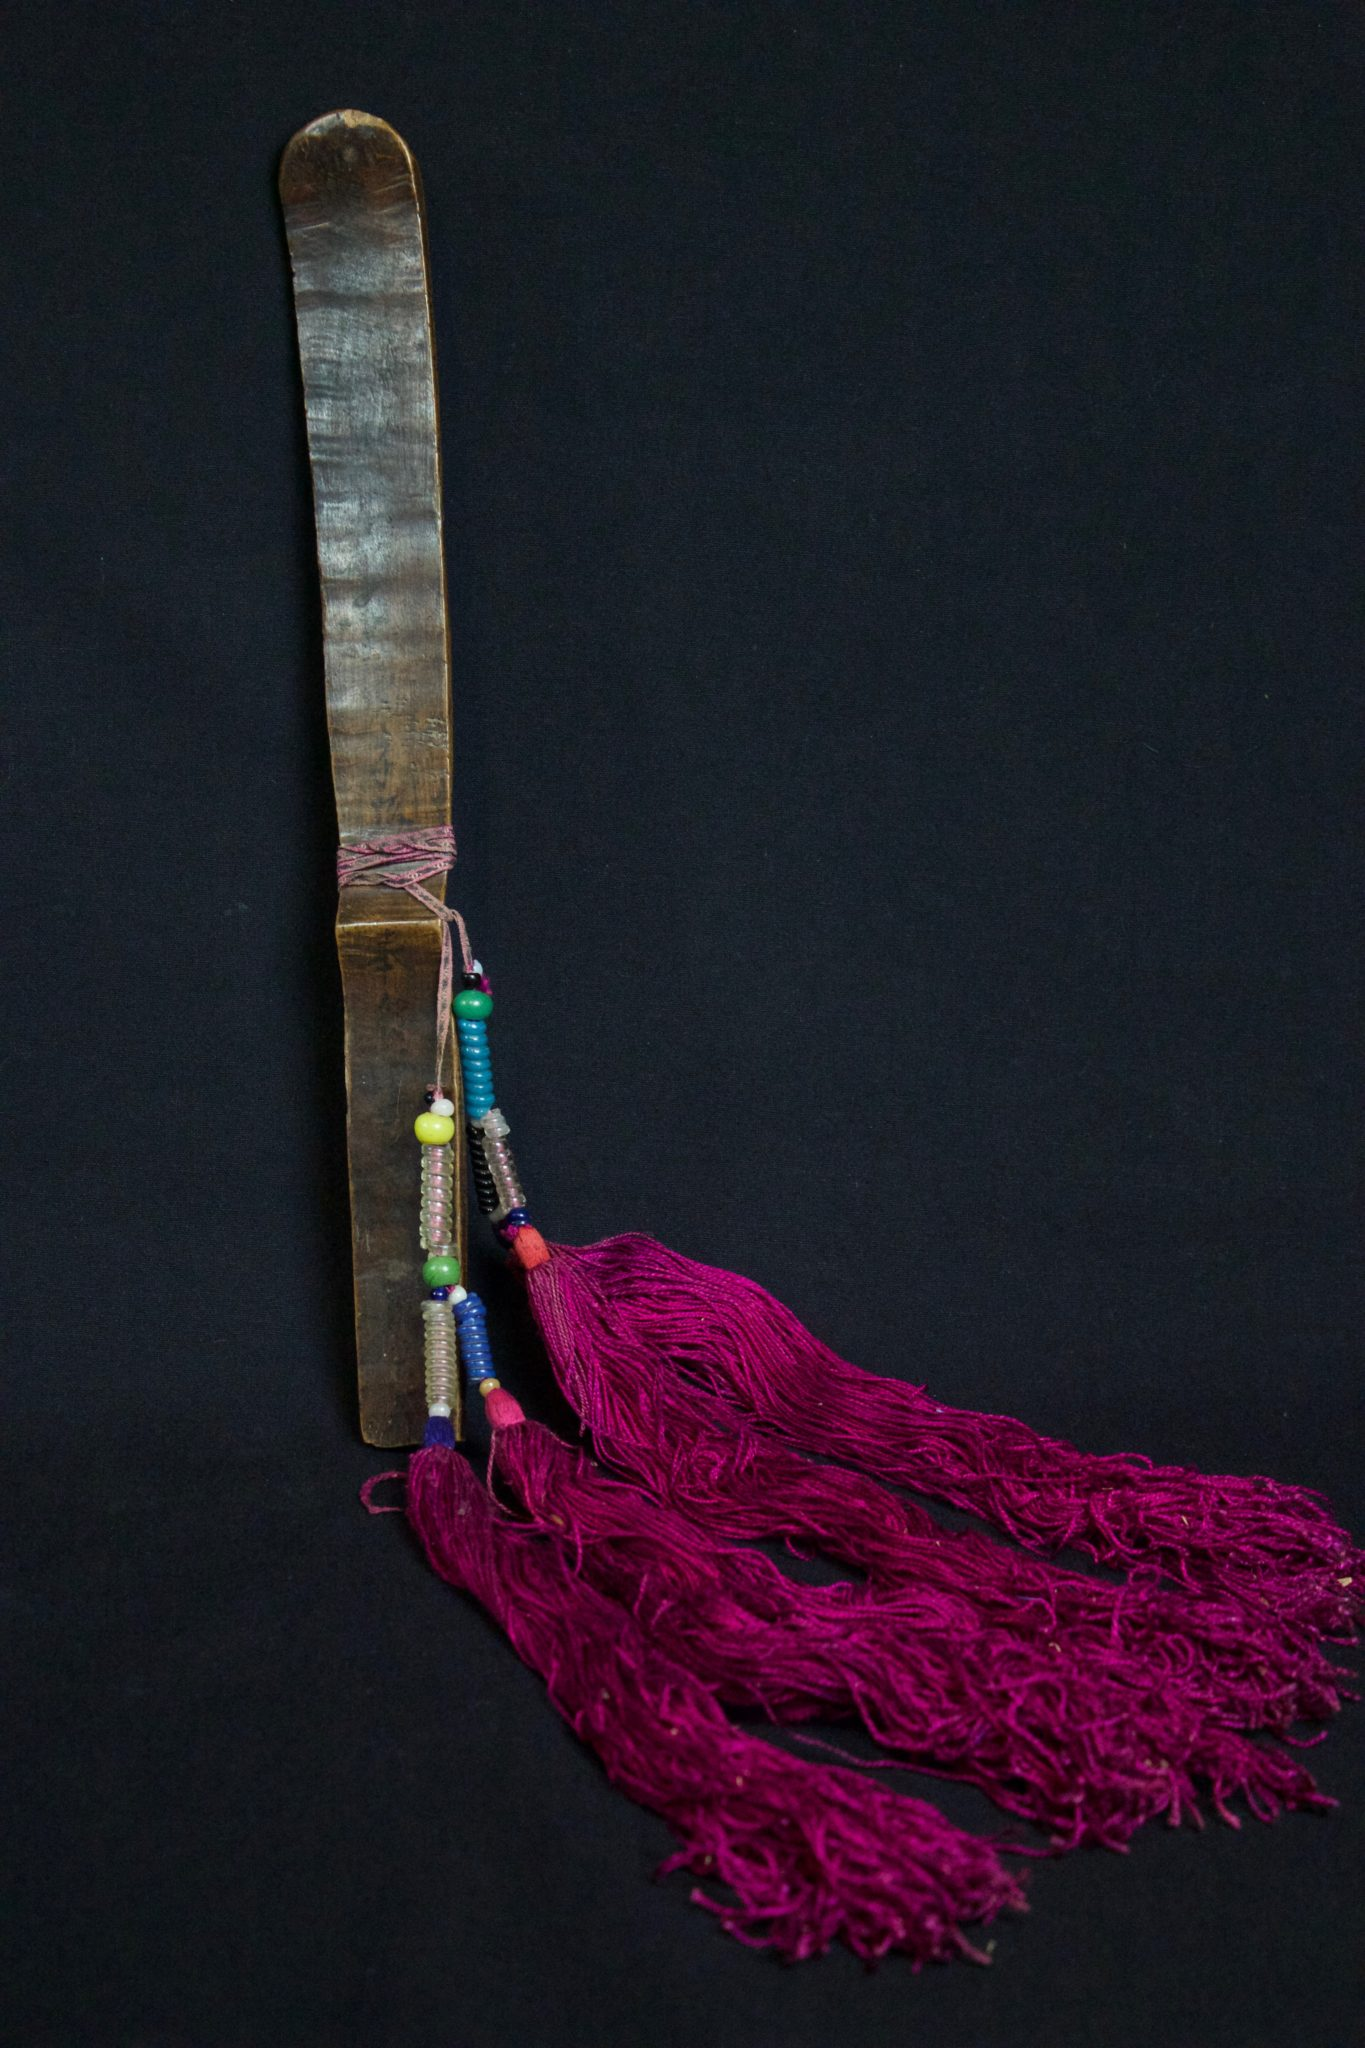 """Shaman's Court Tablet or Wand, Vietnam, Yao people, Mid to late 19th c, Wood, finely woven cotton band with glass beads. Potent tool used similarly to a Himalayan Phurba, to direct evil energy away and to summon and control spirits. Text characters are painted onto all sides. 13 ¼"""" x 16 ½"""" x ¾"""", $650"""